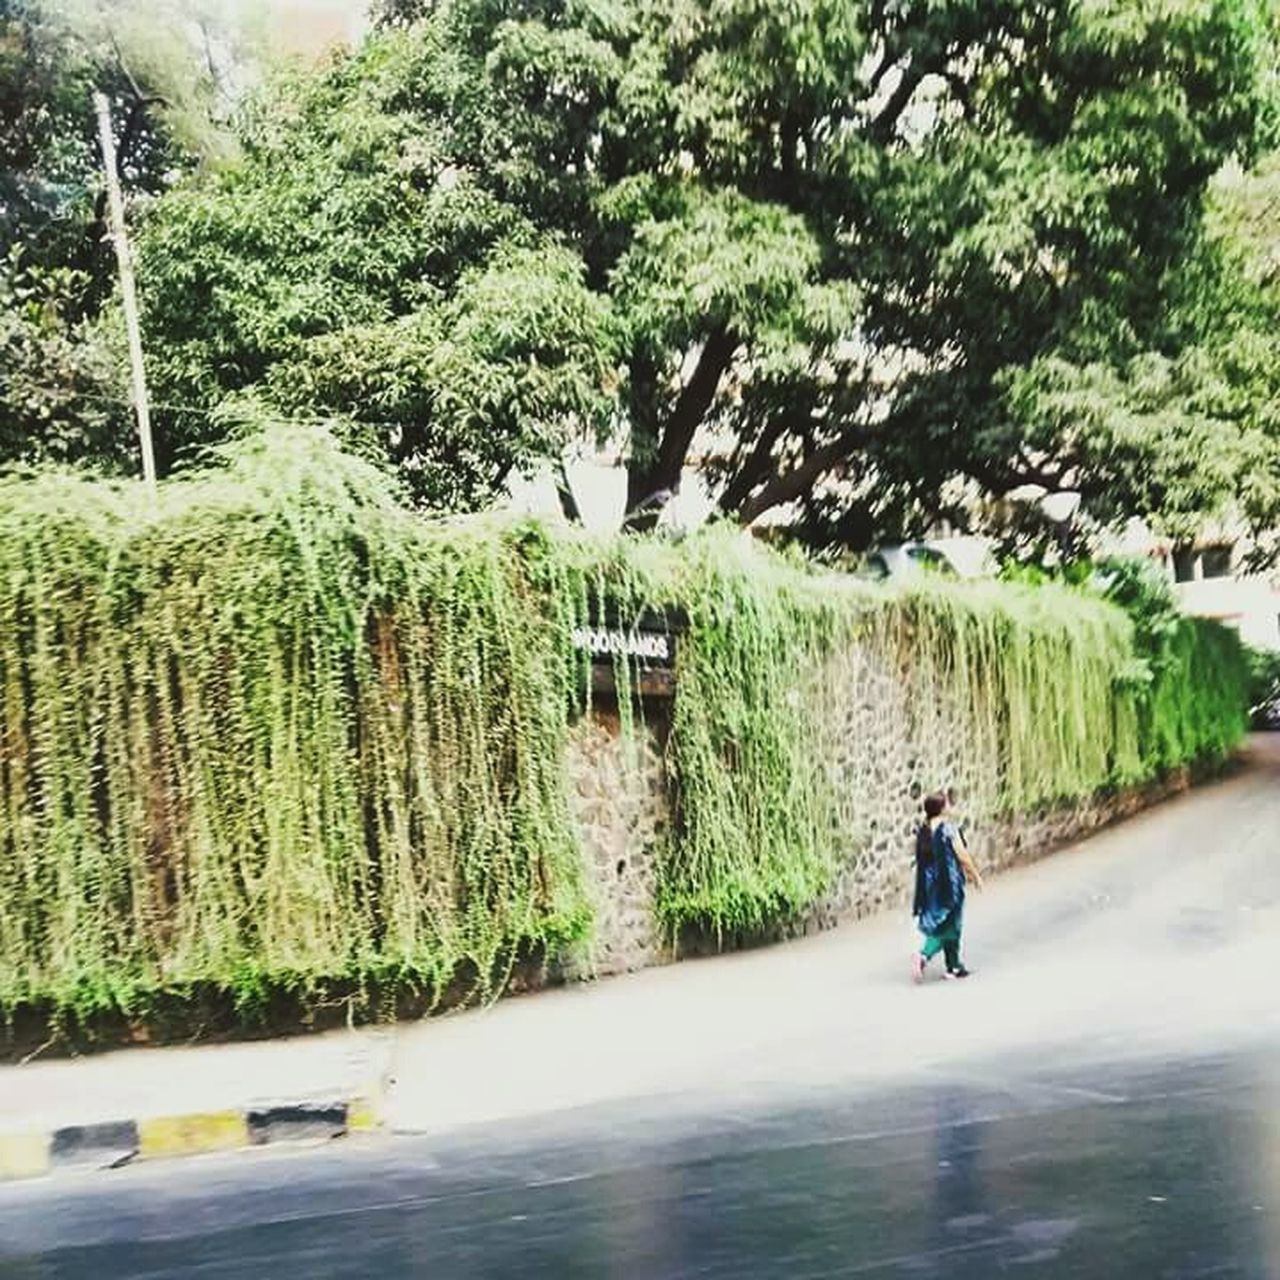 tree, full length, growth, rear view, real people, one person, day, outdoors, nature, road, beauty in nature, people